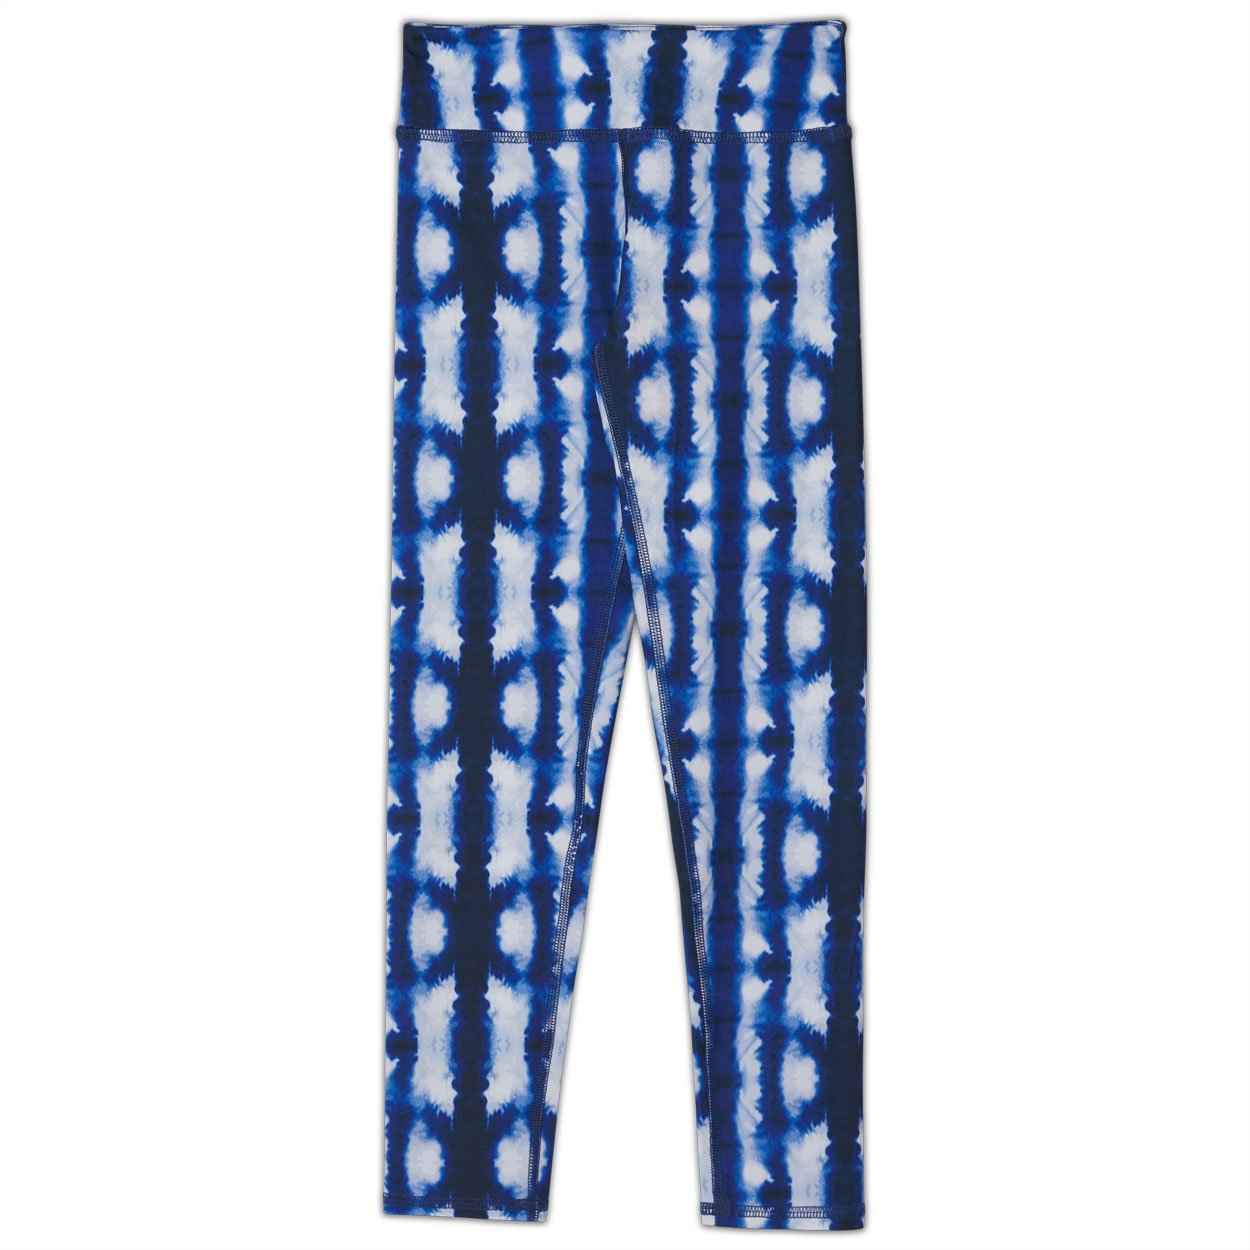 Shibori Hybrid Youth Leggings UPF 50+